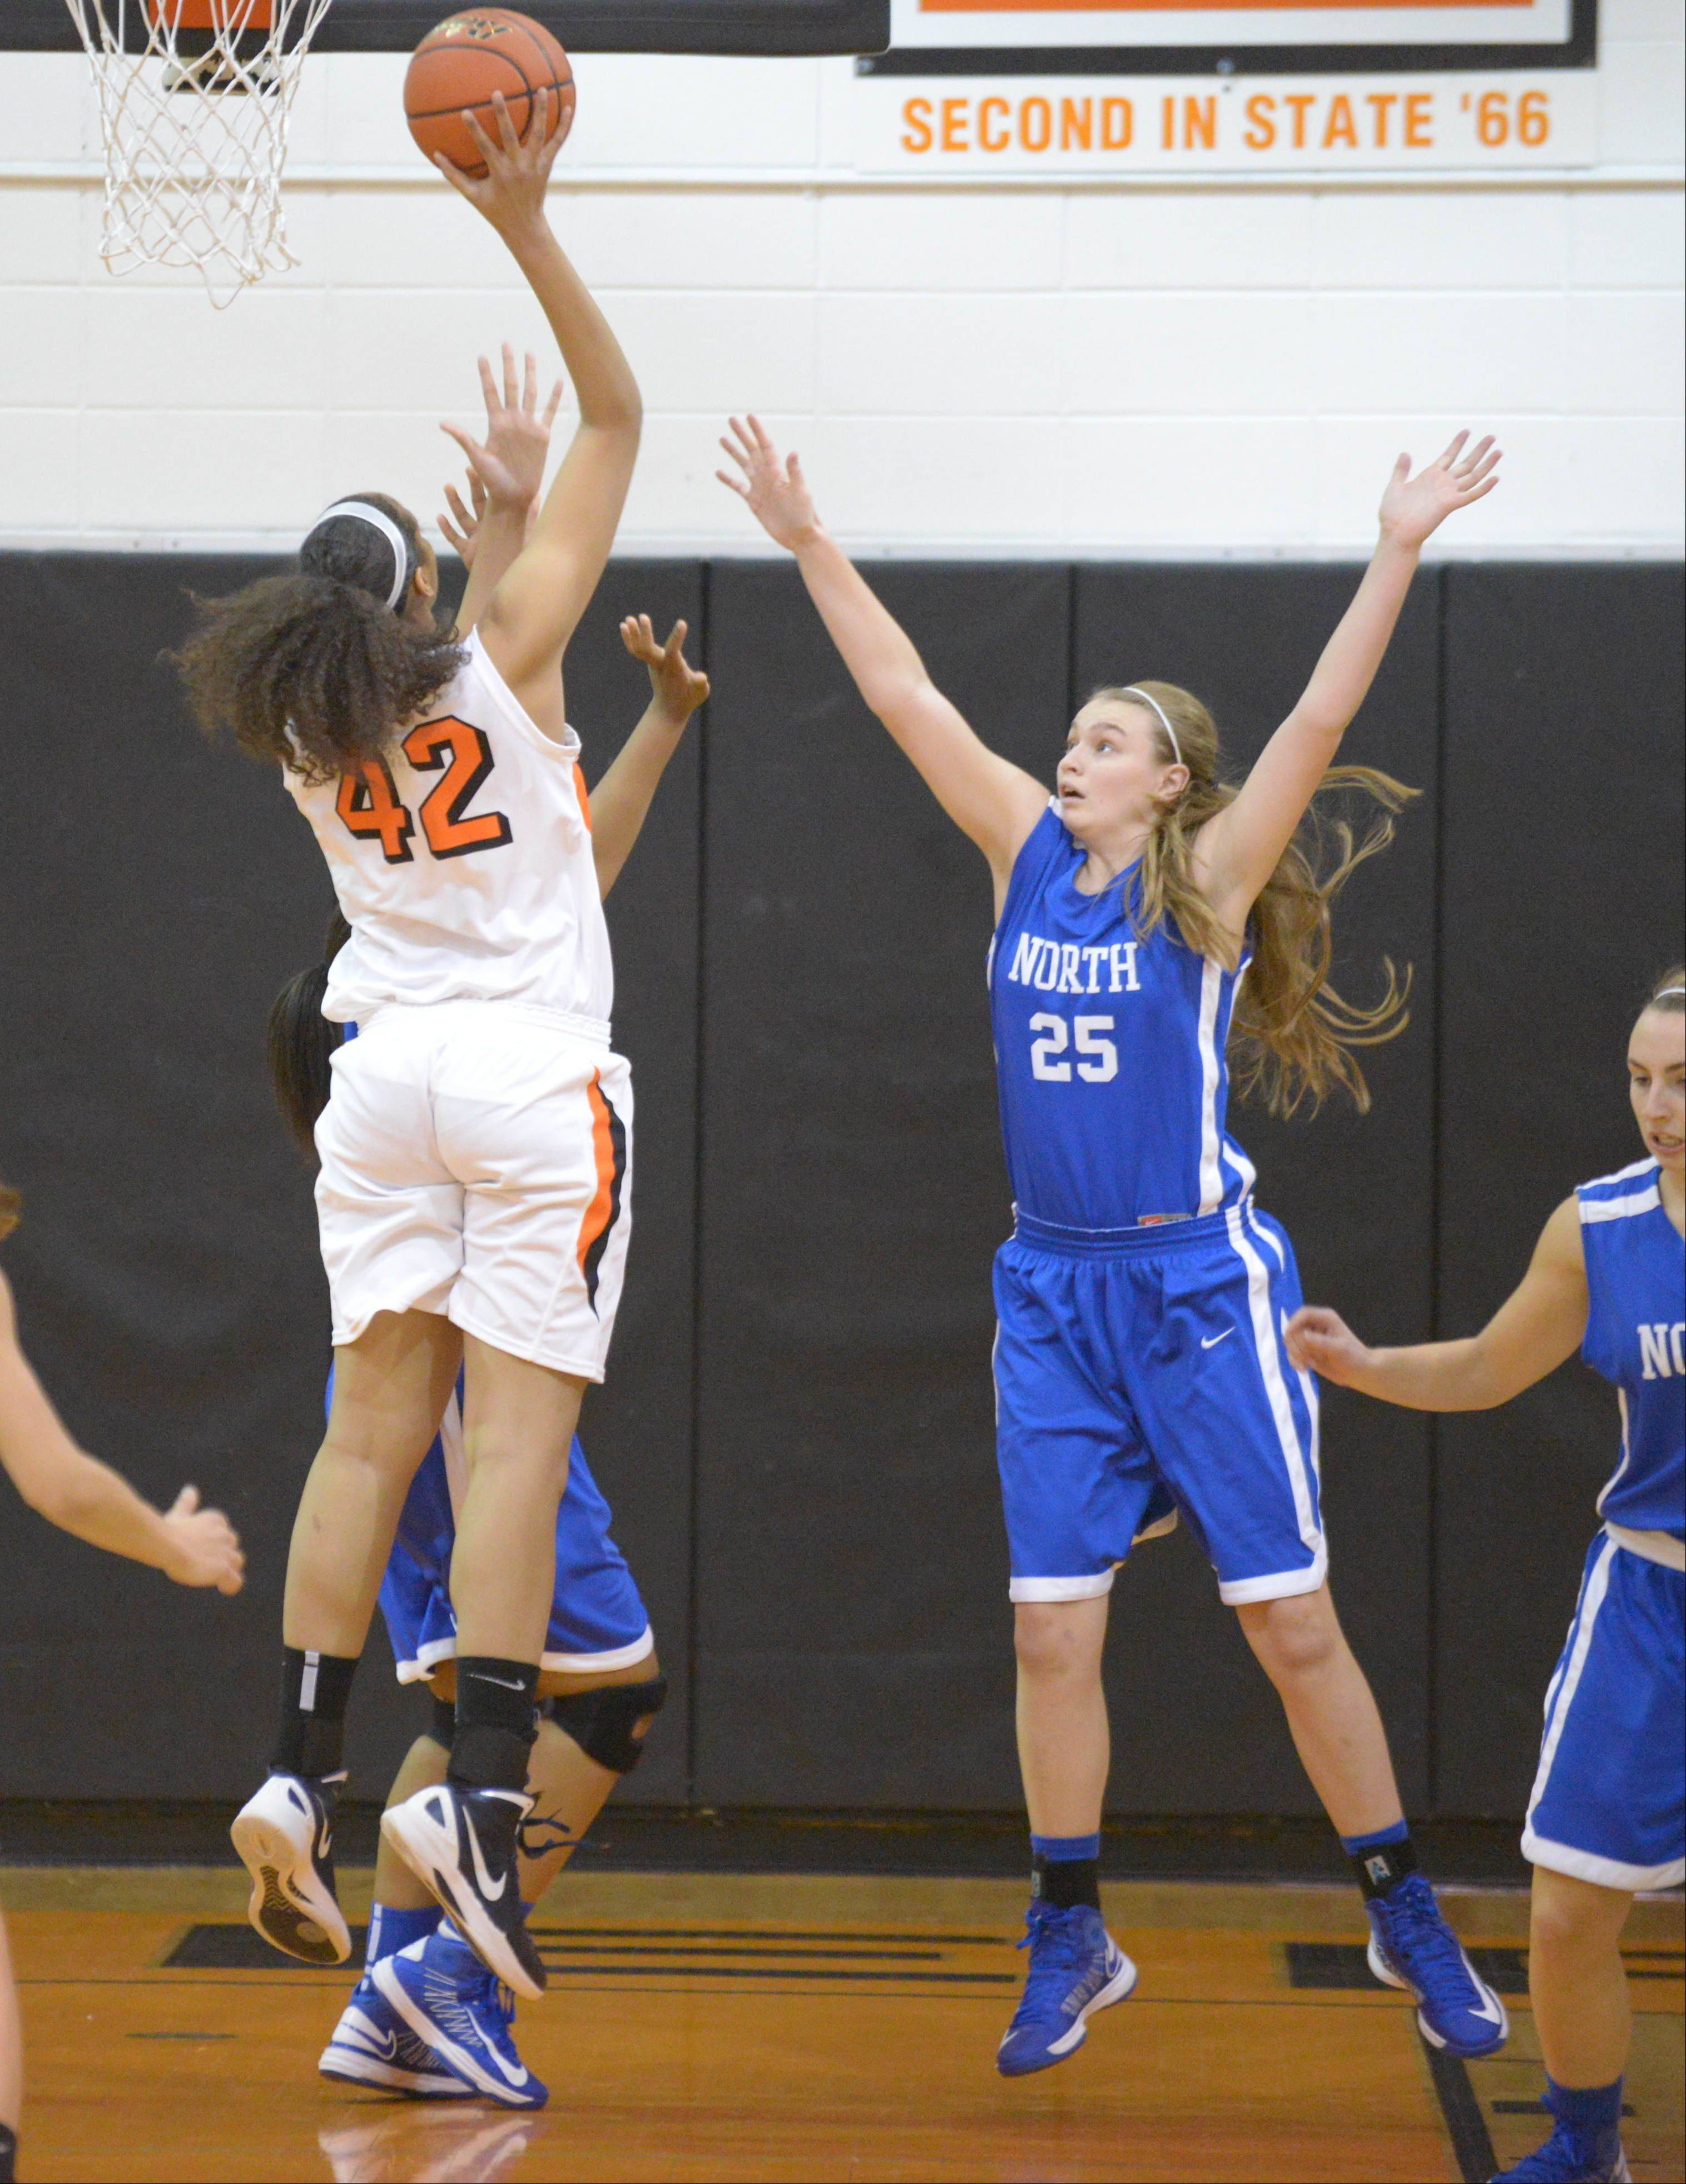 Wheaton Warrenville South hosted Wheaton North Thursday night for girls basketball.